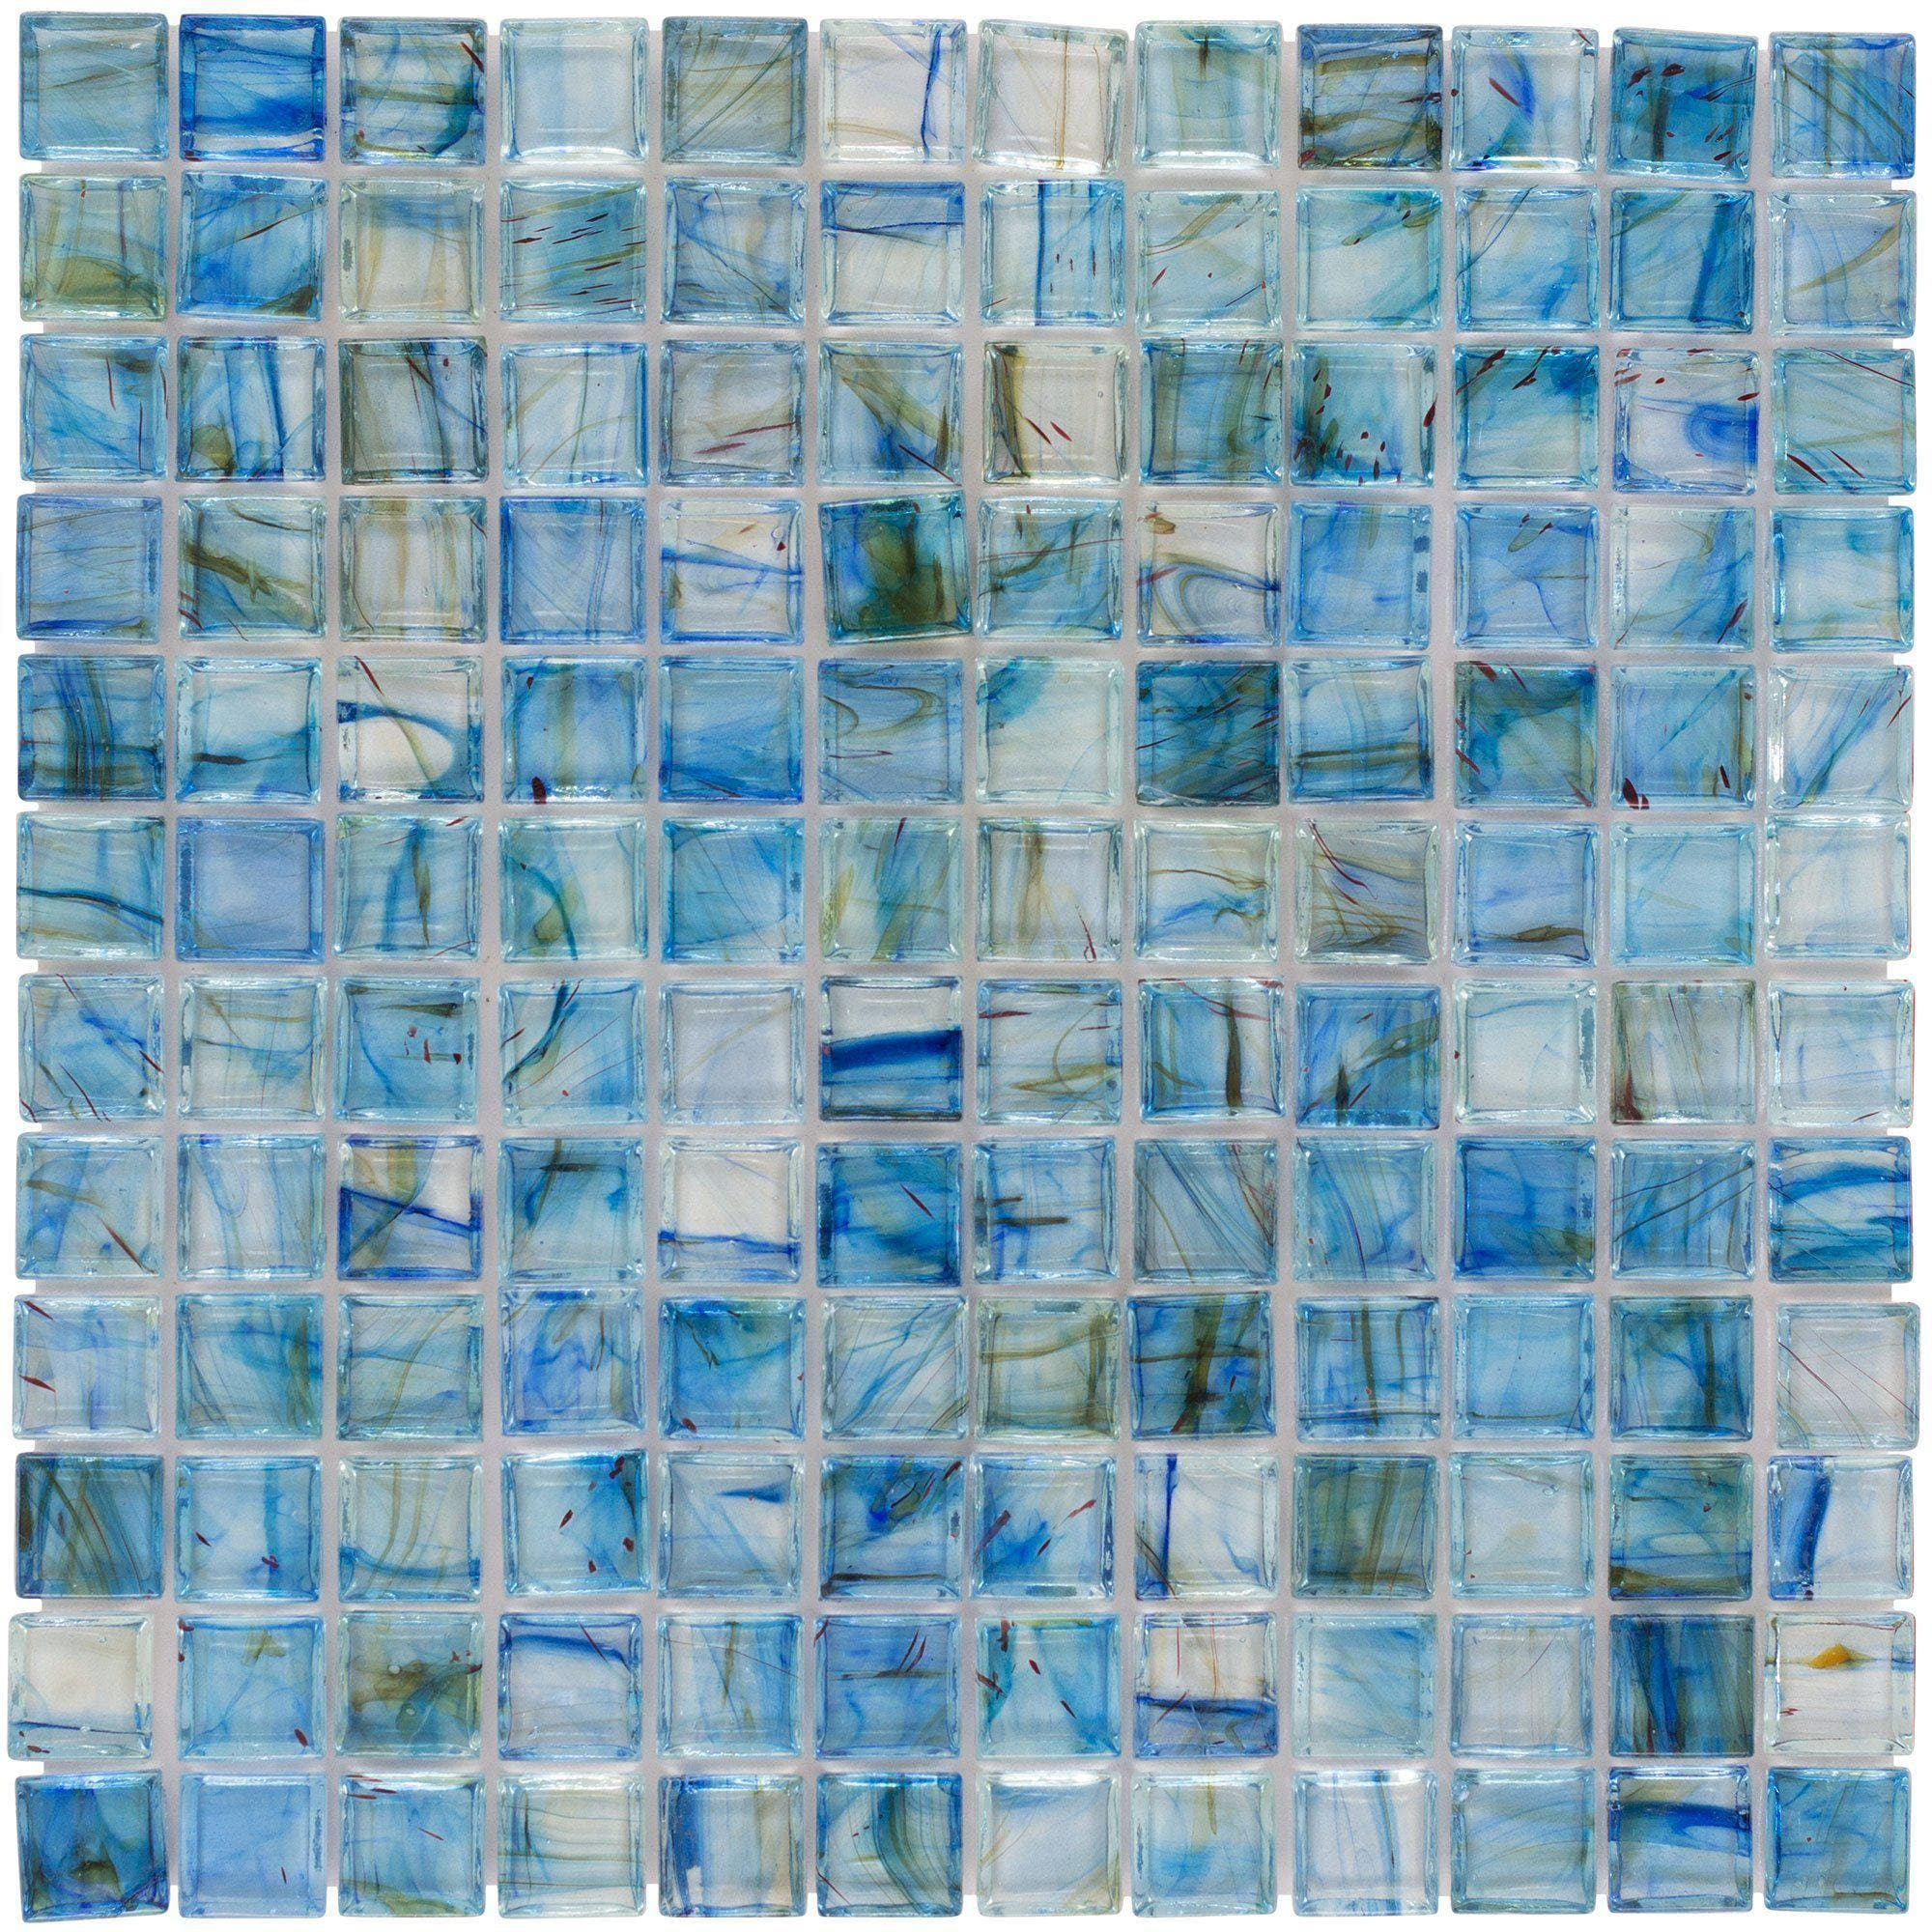 Mosaic Backsplash - Feature - Wall - Bathroom - Kitchen - Pool - Tile